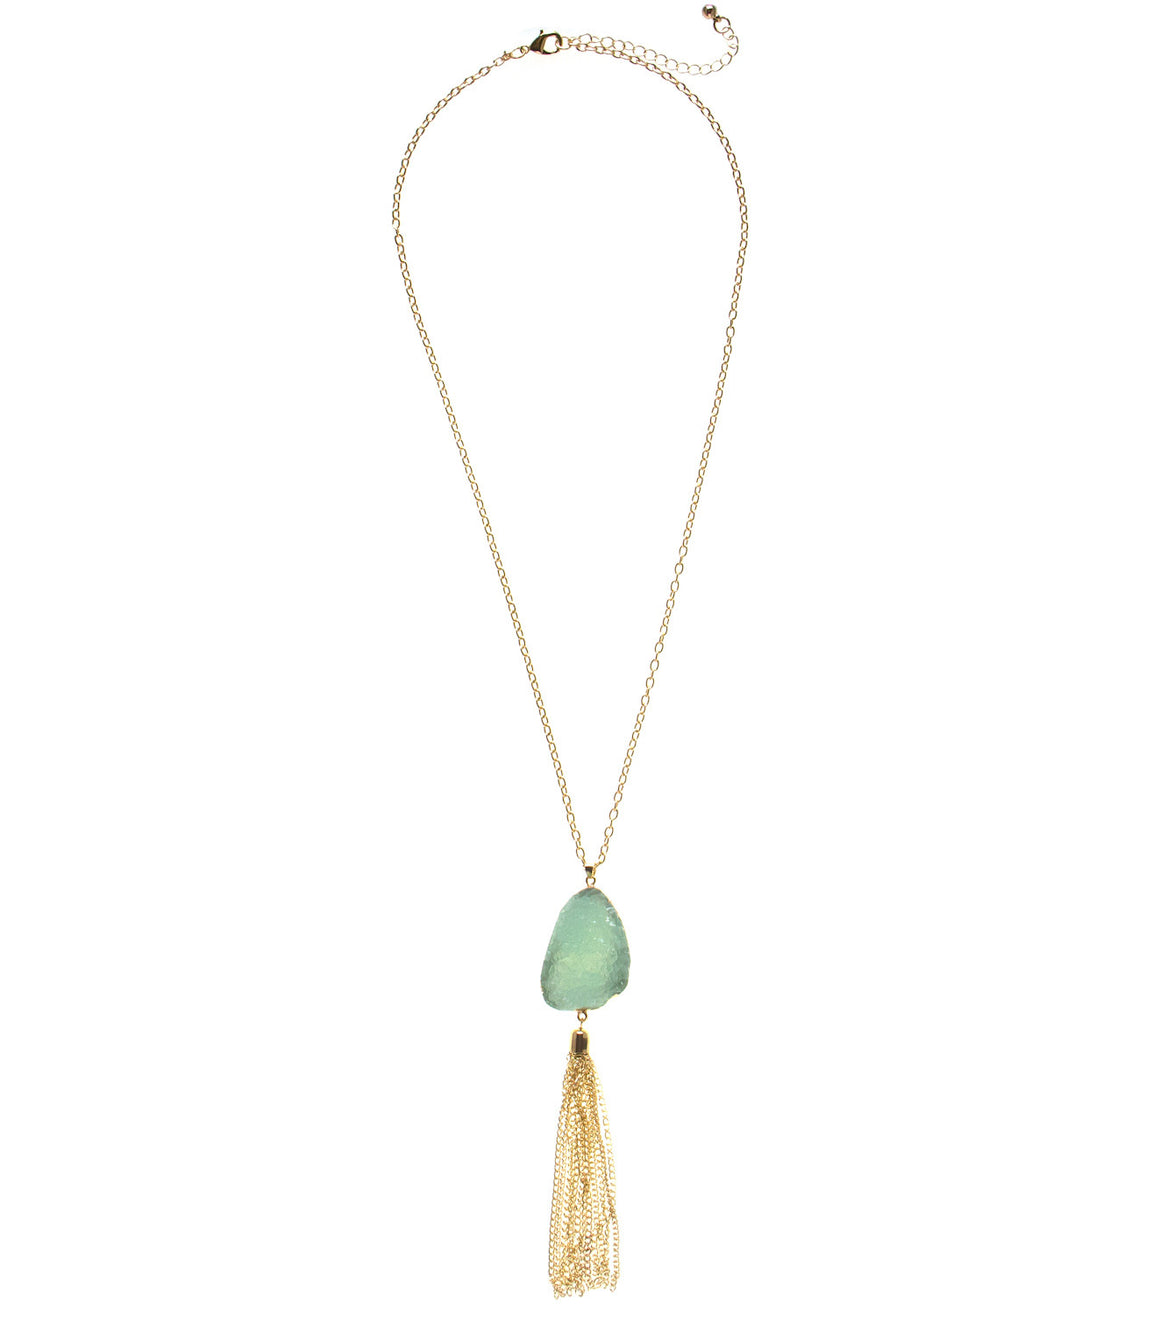 Faux druzy gold wrapped necklace with tassel